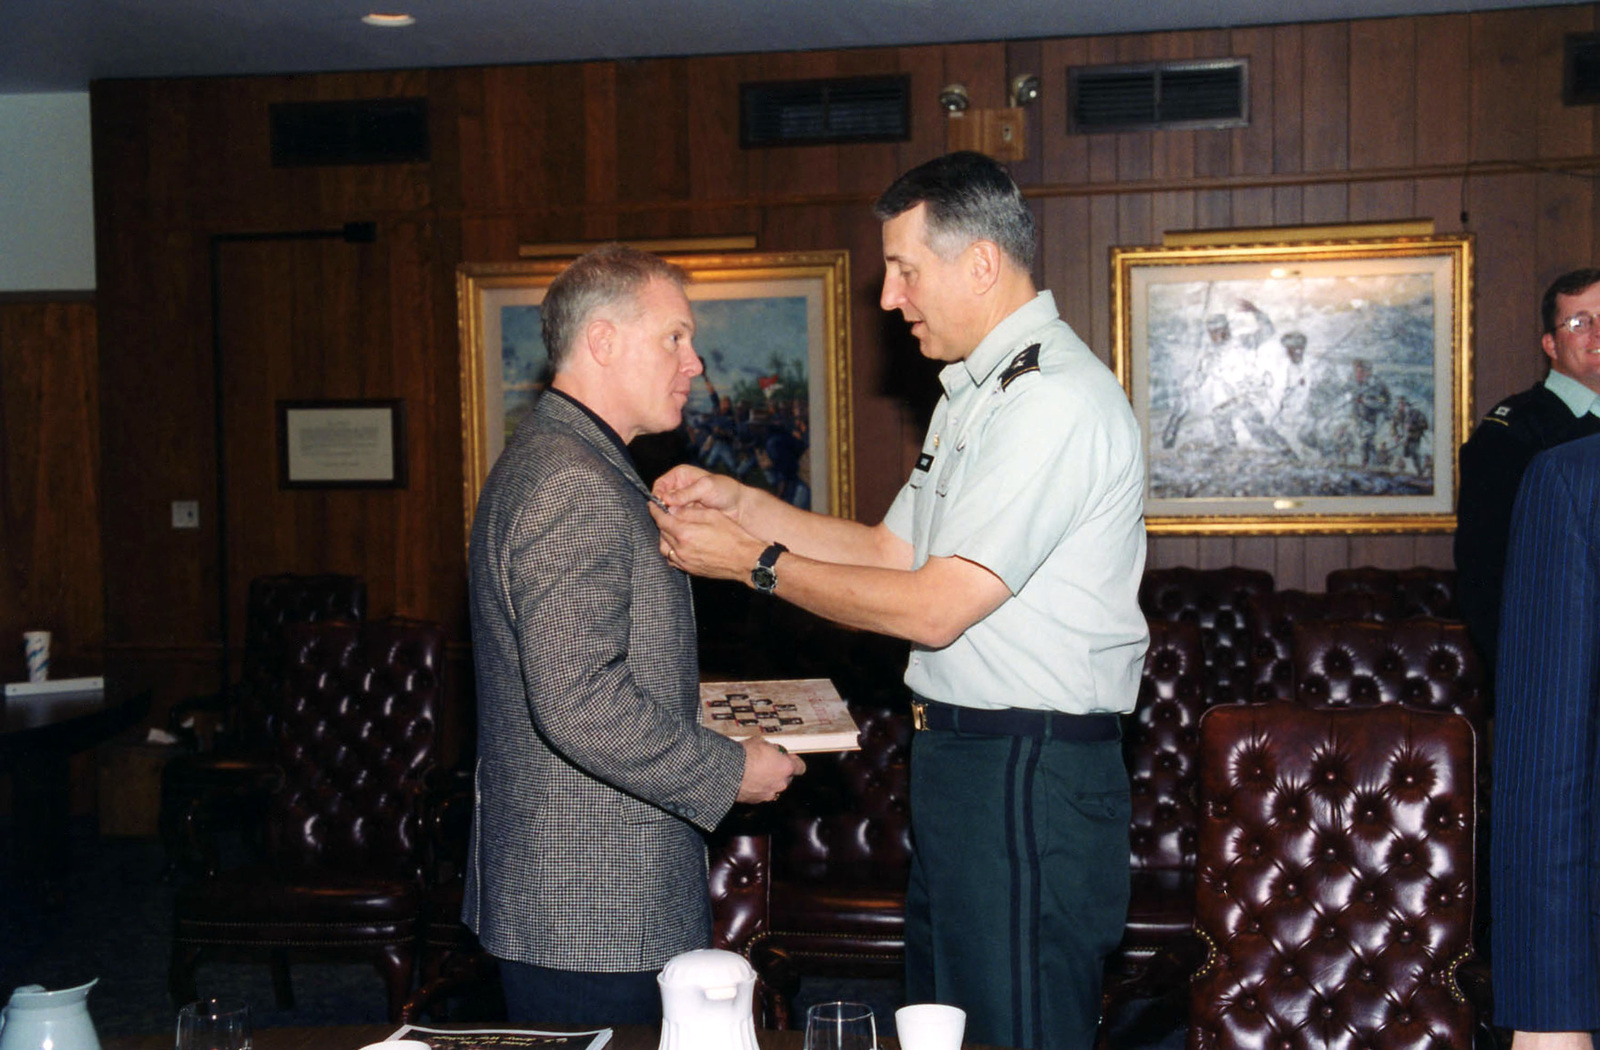 Pennsylvania State Representative the Honorable H. William DeWeese, receives a Centennial Pin from United States Army War College Commandant, Major General (MGEN) Robert Ivany during a recent visit